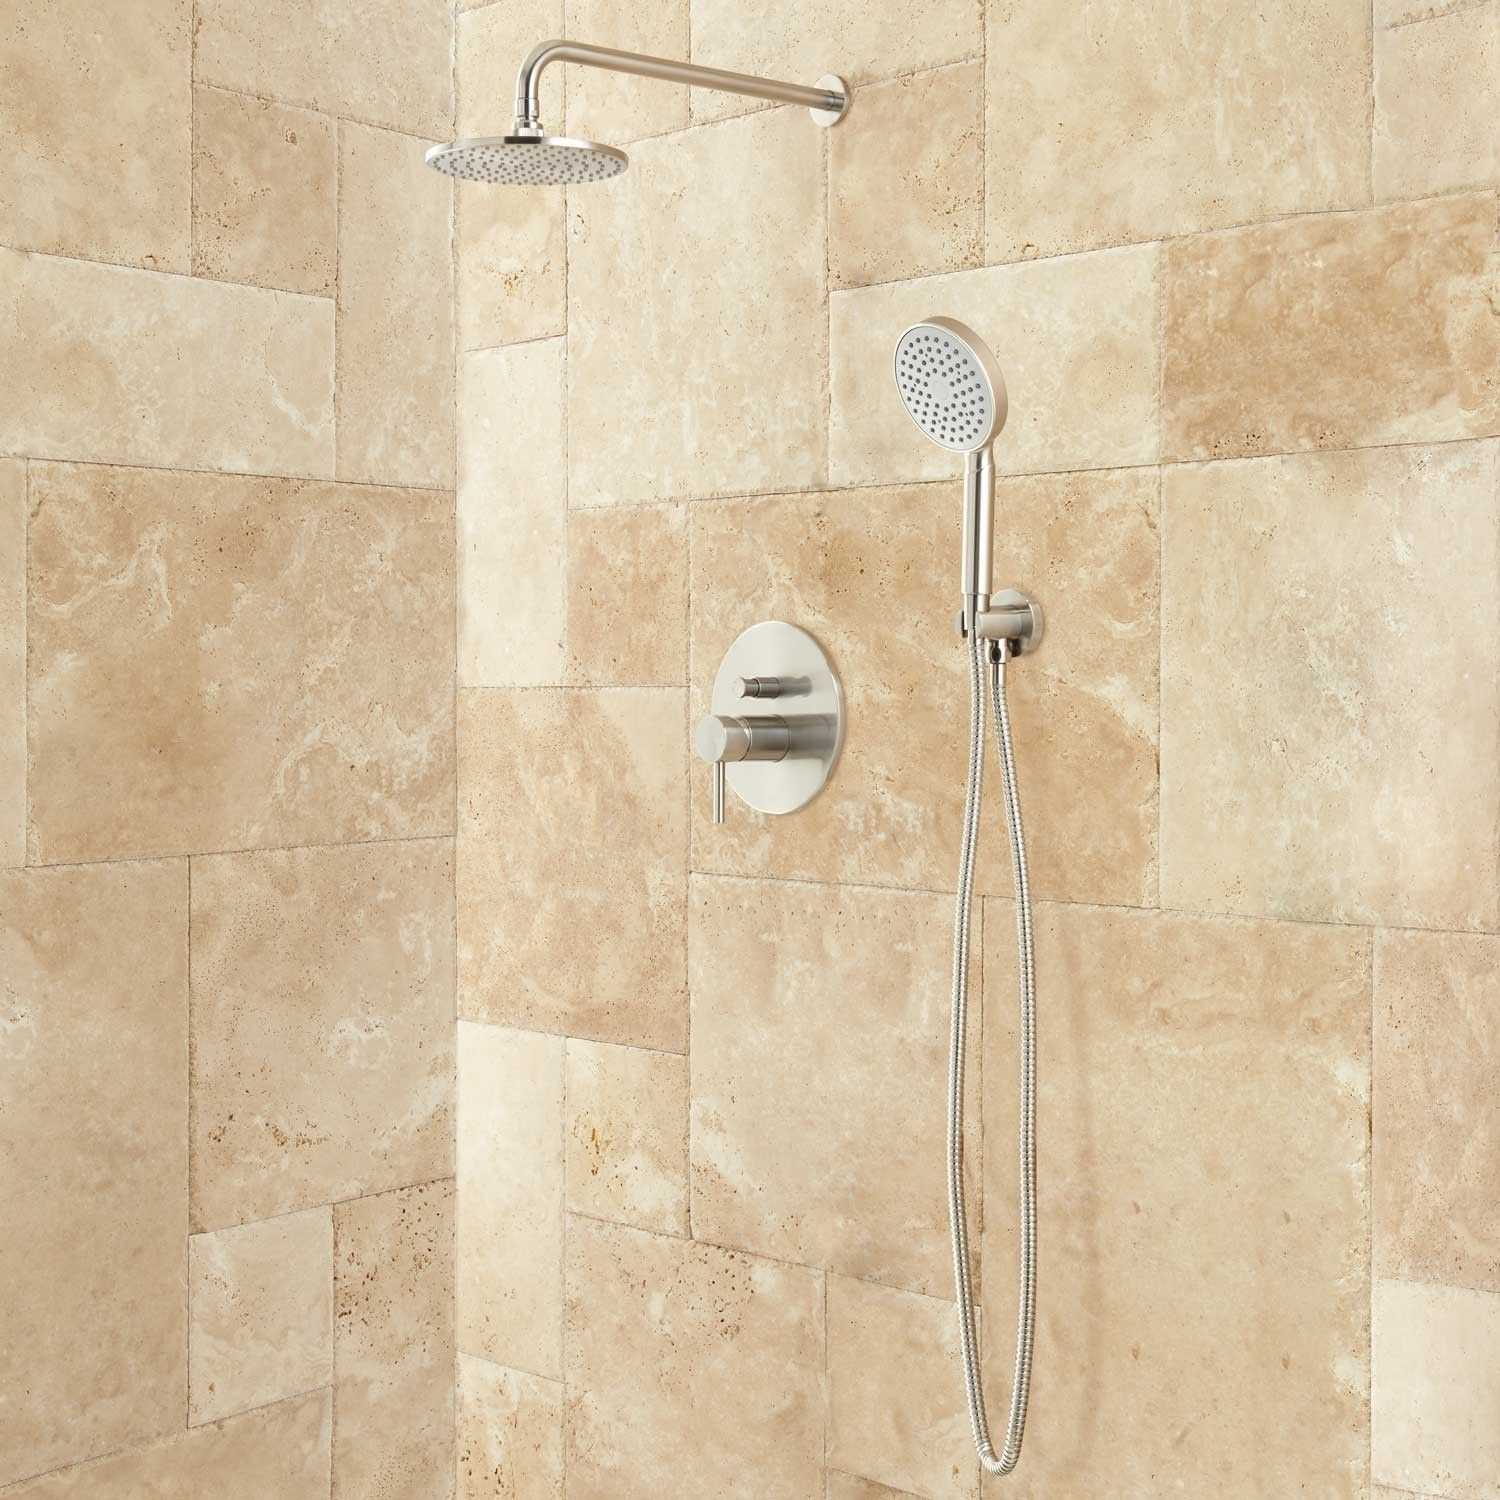 260, (brushed nickel) Lattimore Shower System with